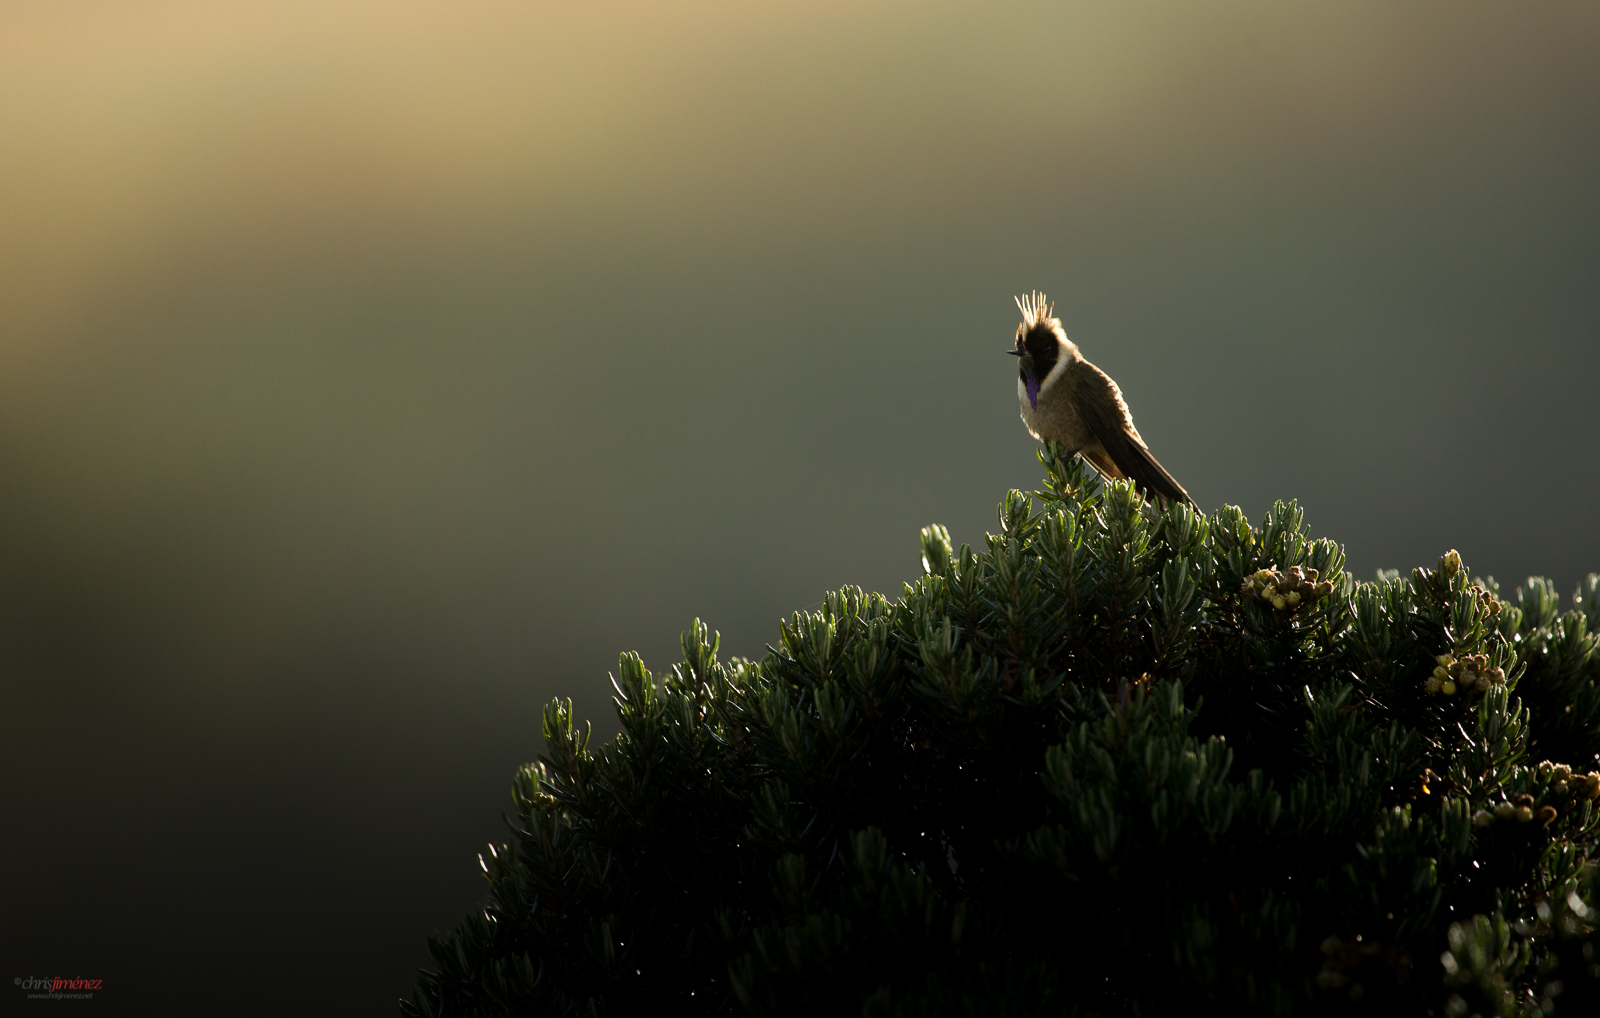 Green Bearded Helmetcrest (Oxypogon guerinii) perched, under the morning light at the Highlands of Colombia, Manizales